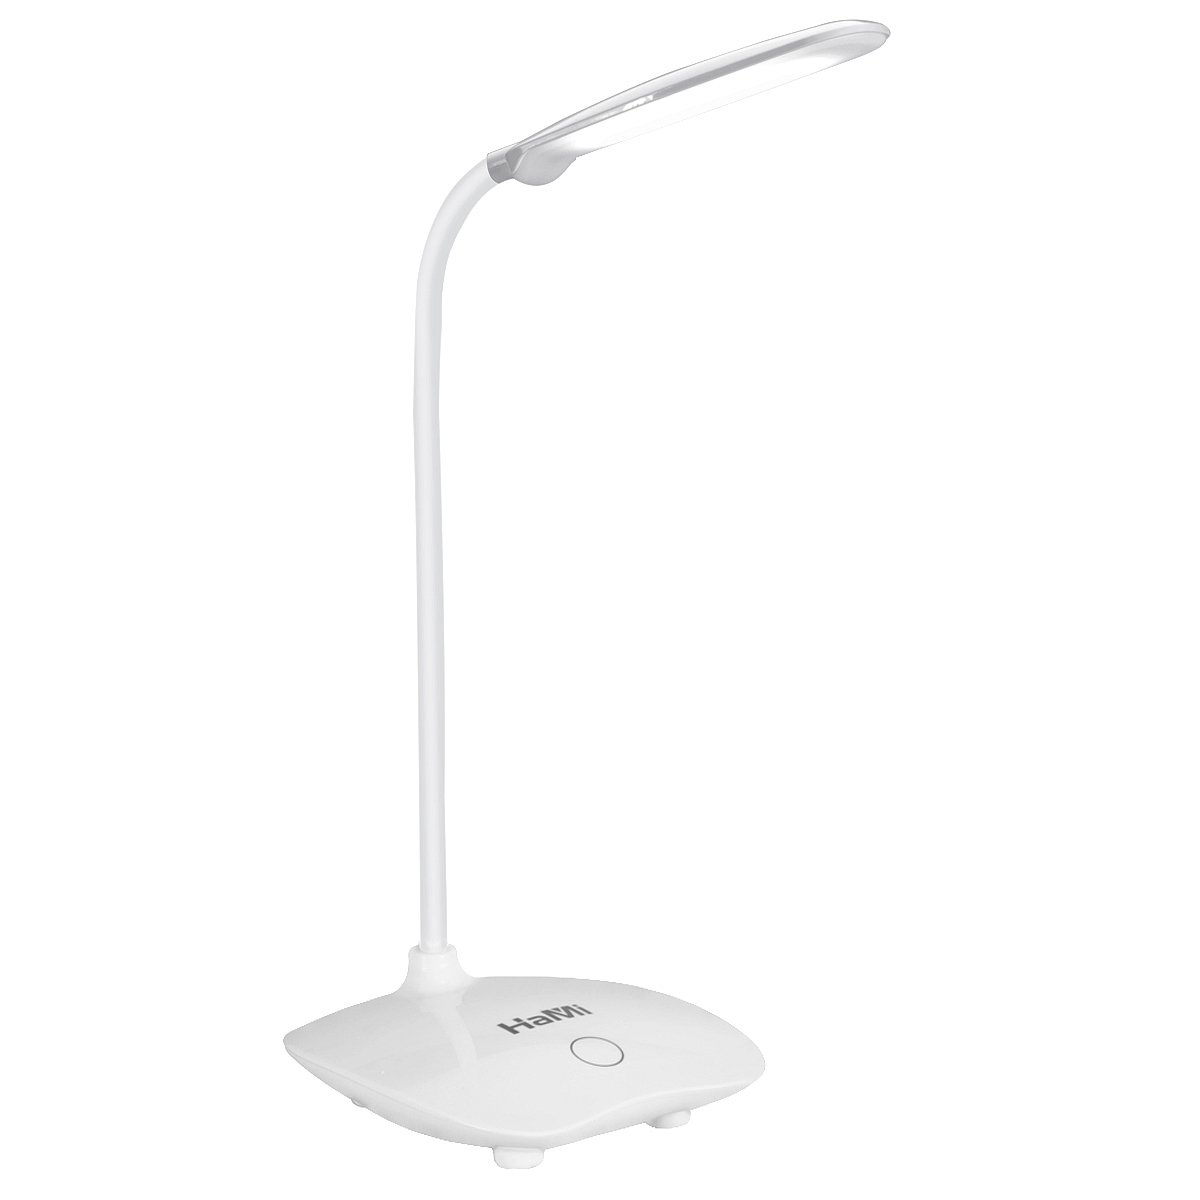 HaMi 5W 18LED Desk Lamp,Eye-Care Dimmable Table Light Lamp with 3 Level Dimmer Touch Control, Adjustable Gooseneck Lamp for Studying, Reading, Working,Camping - White